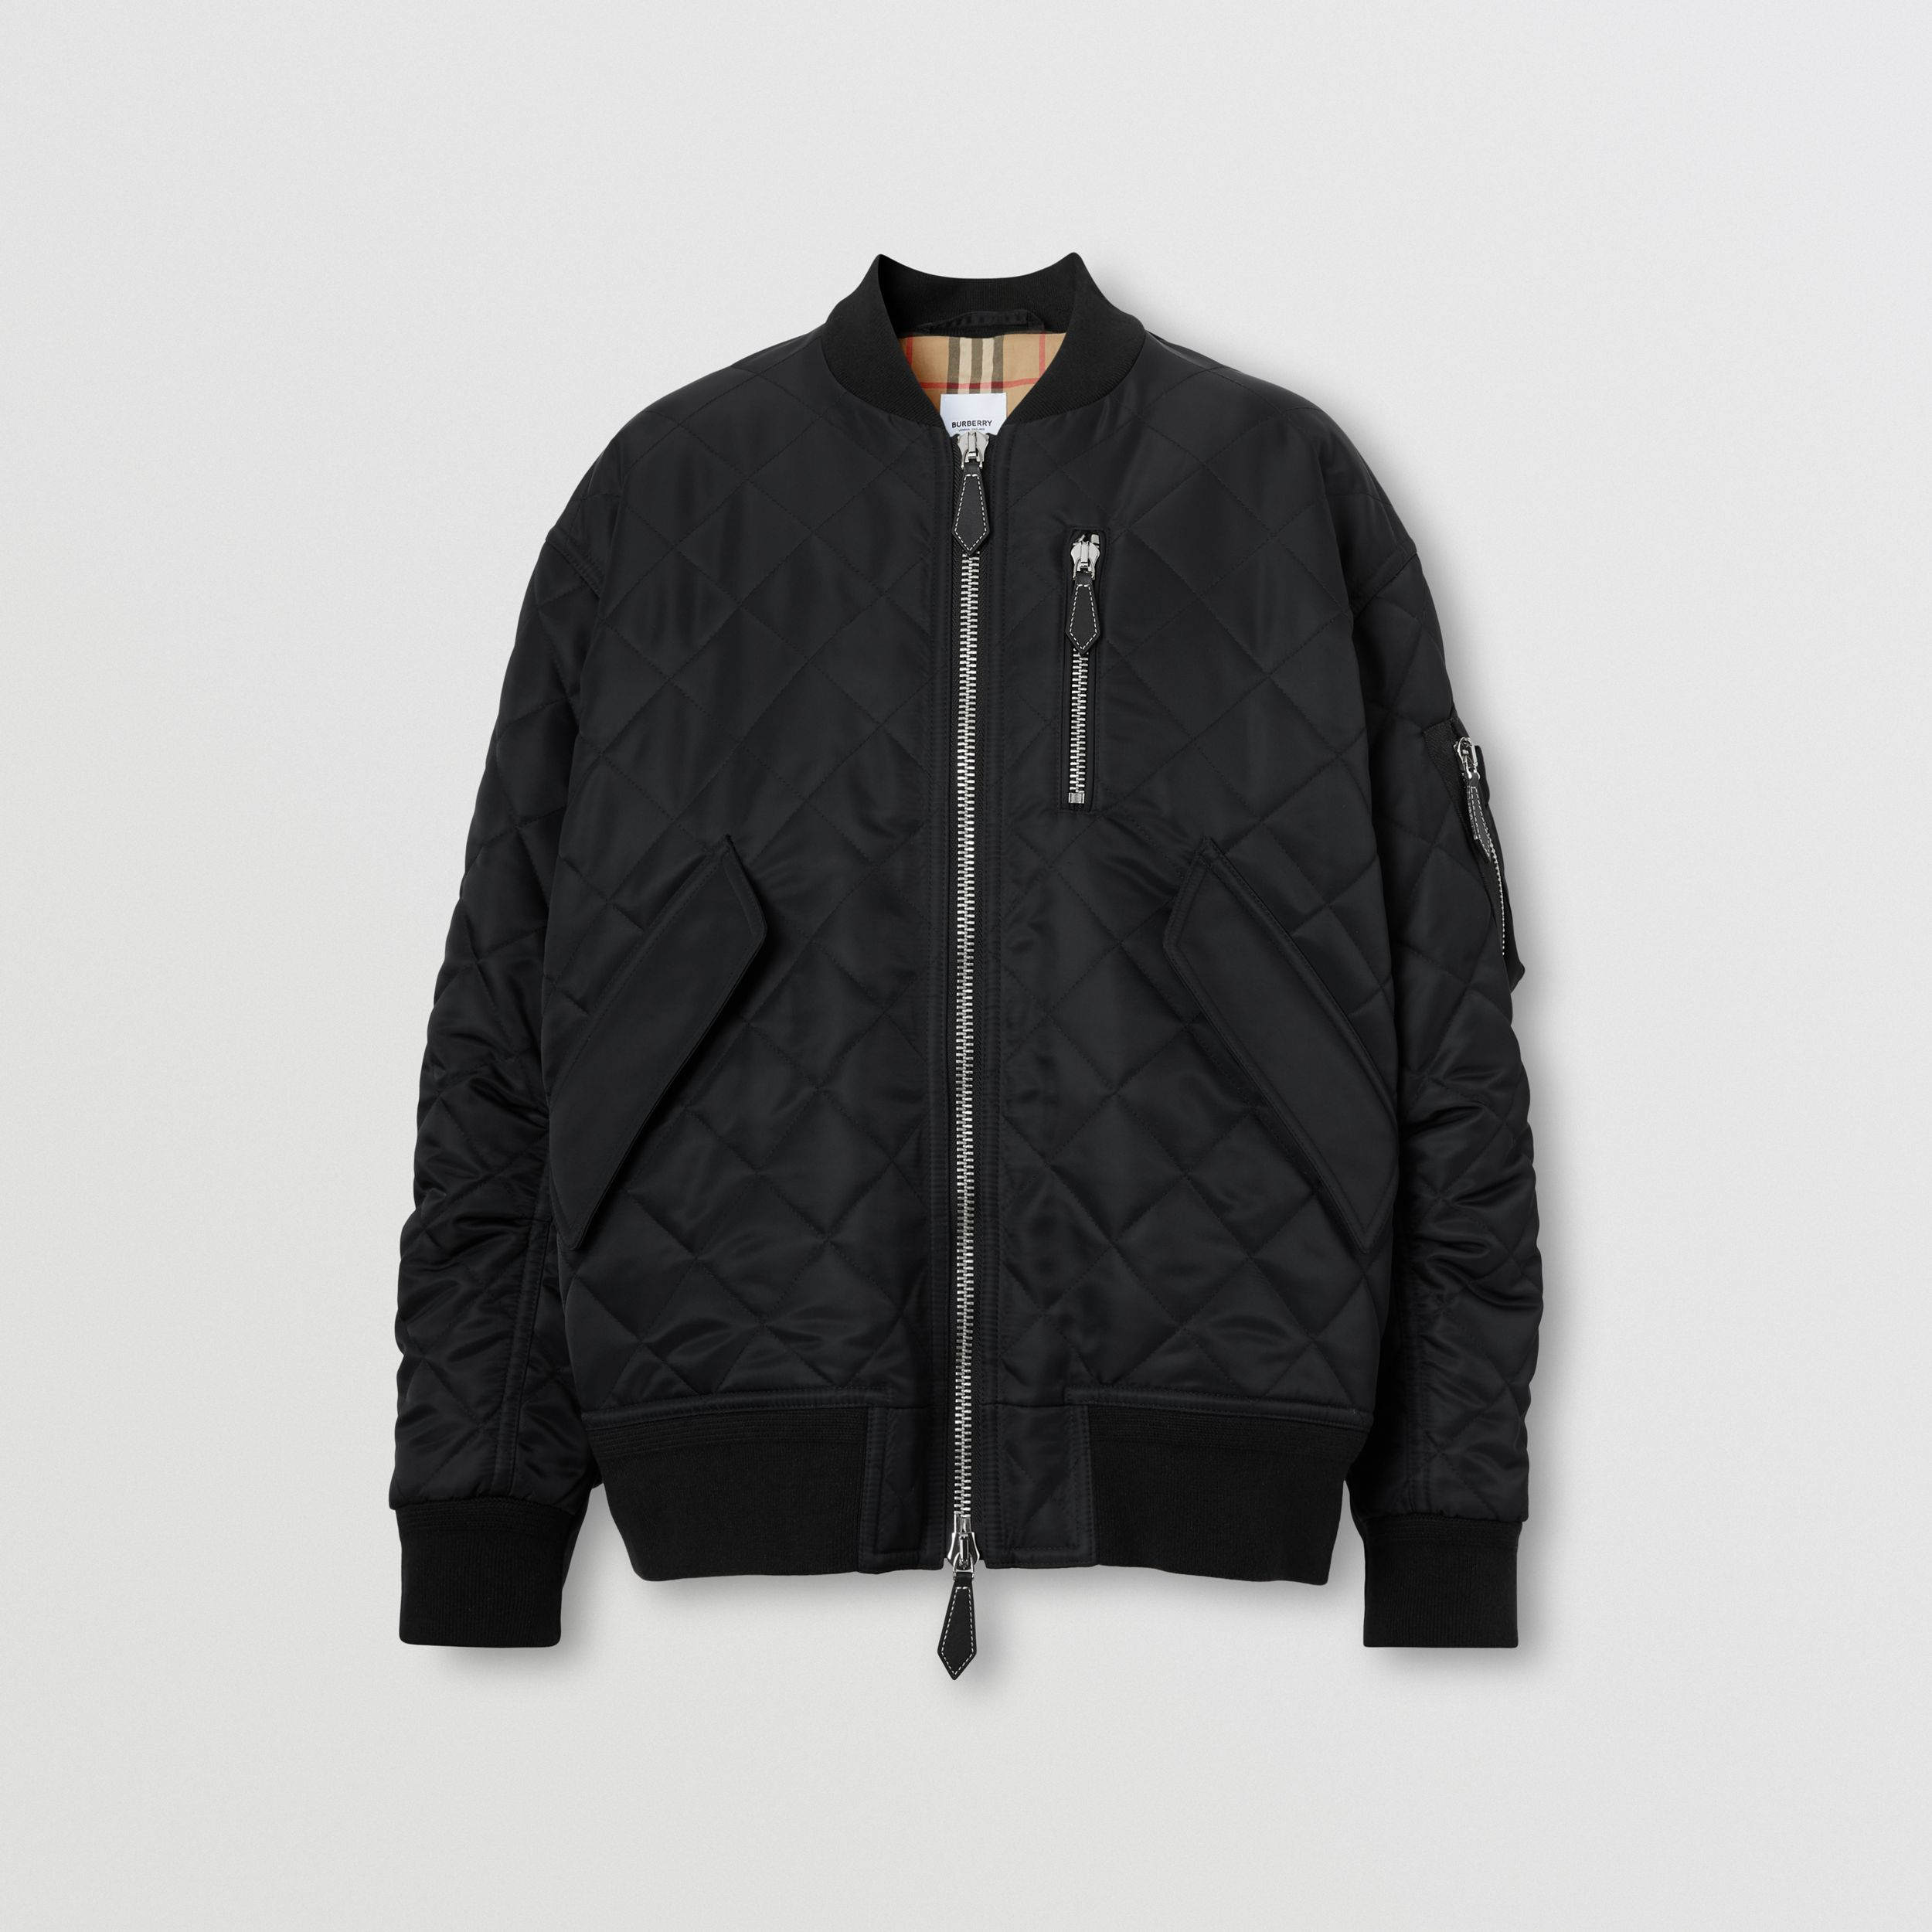 Diamond Quilted Nylon and Cotton Bomber Jacket in Black/black - Women | Burberry United Kingdom - 4